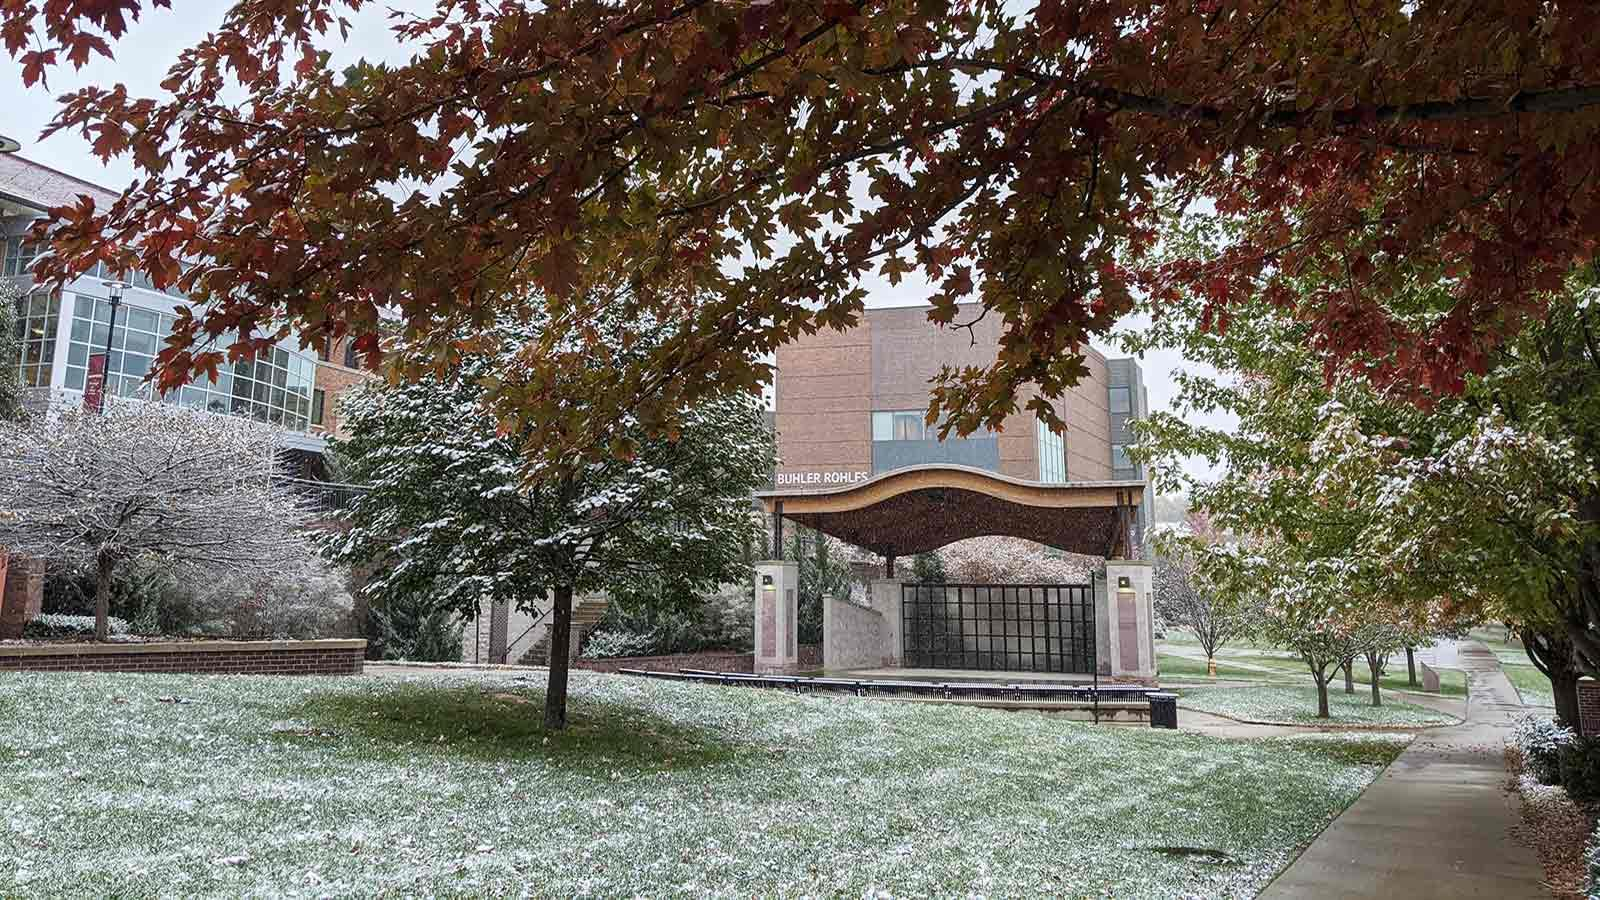 A snowy fall day at Morningside College.